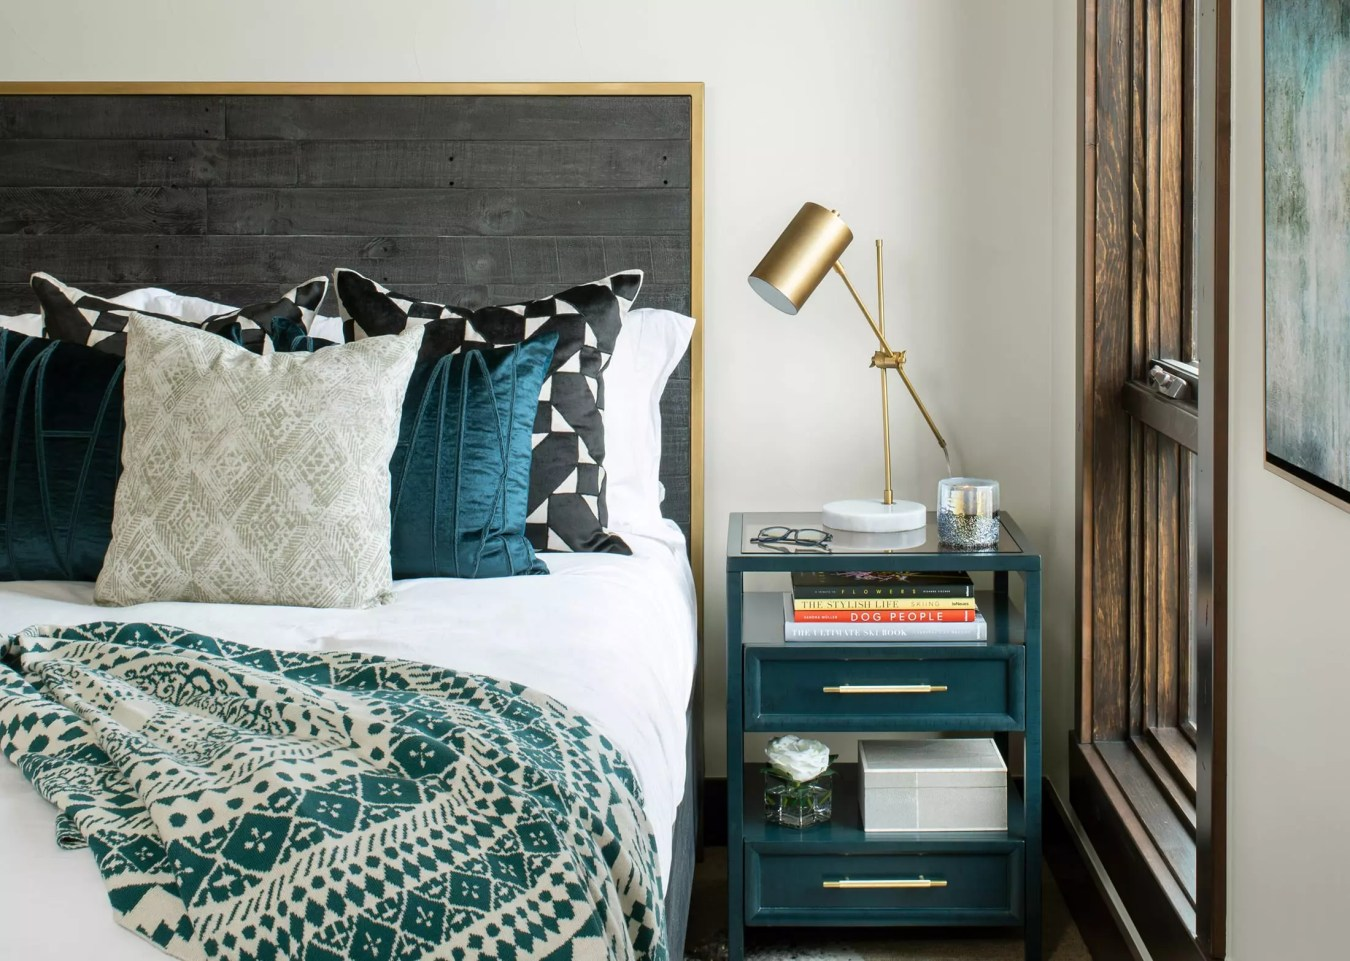 bed and nightstand